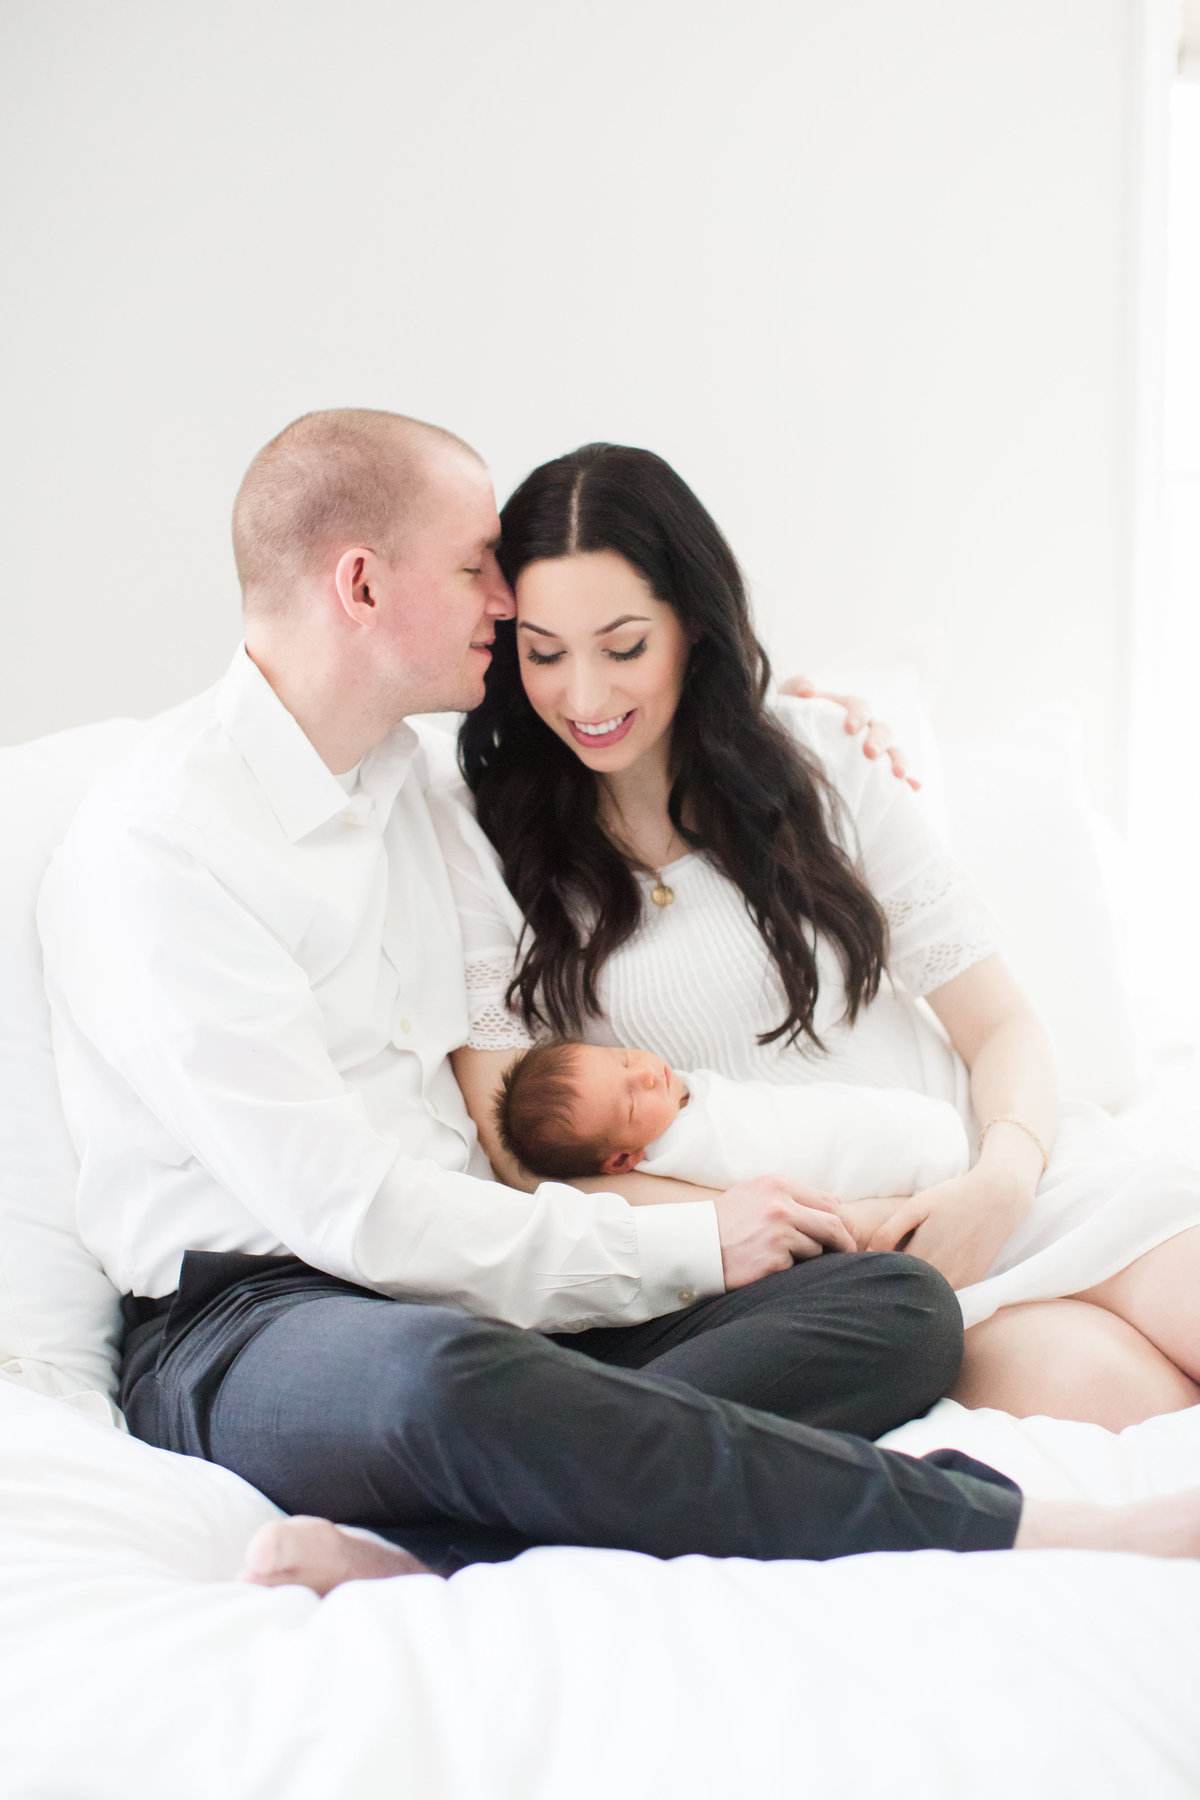 Couple holding newborn baby sitting on white bed